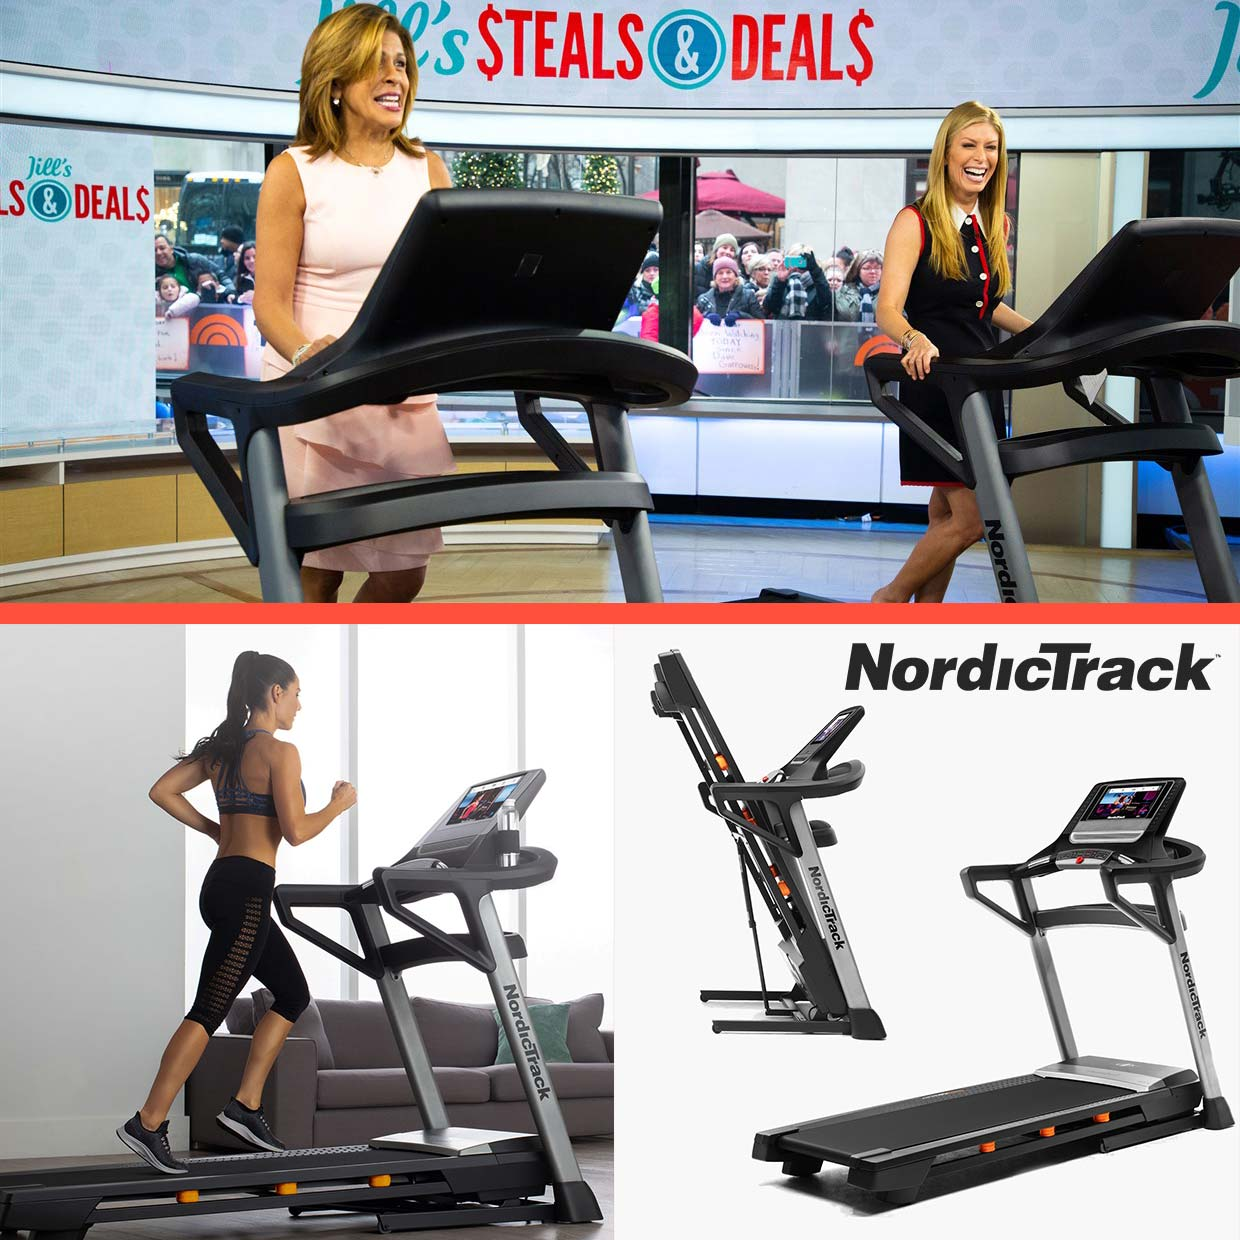 Jill S Steals Deals Fitness Awesome Options To Begin Your Fitness Journey Maybe Yes No Best Product Reviews